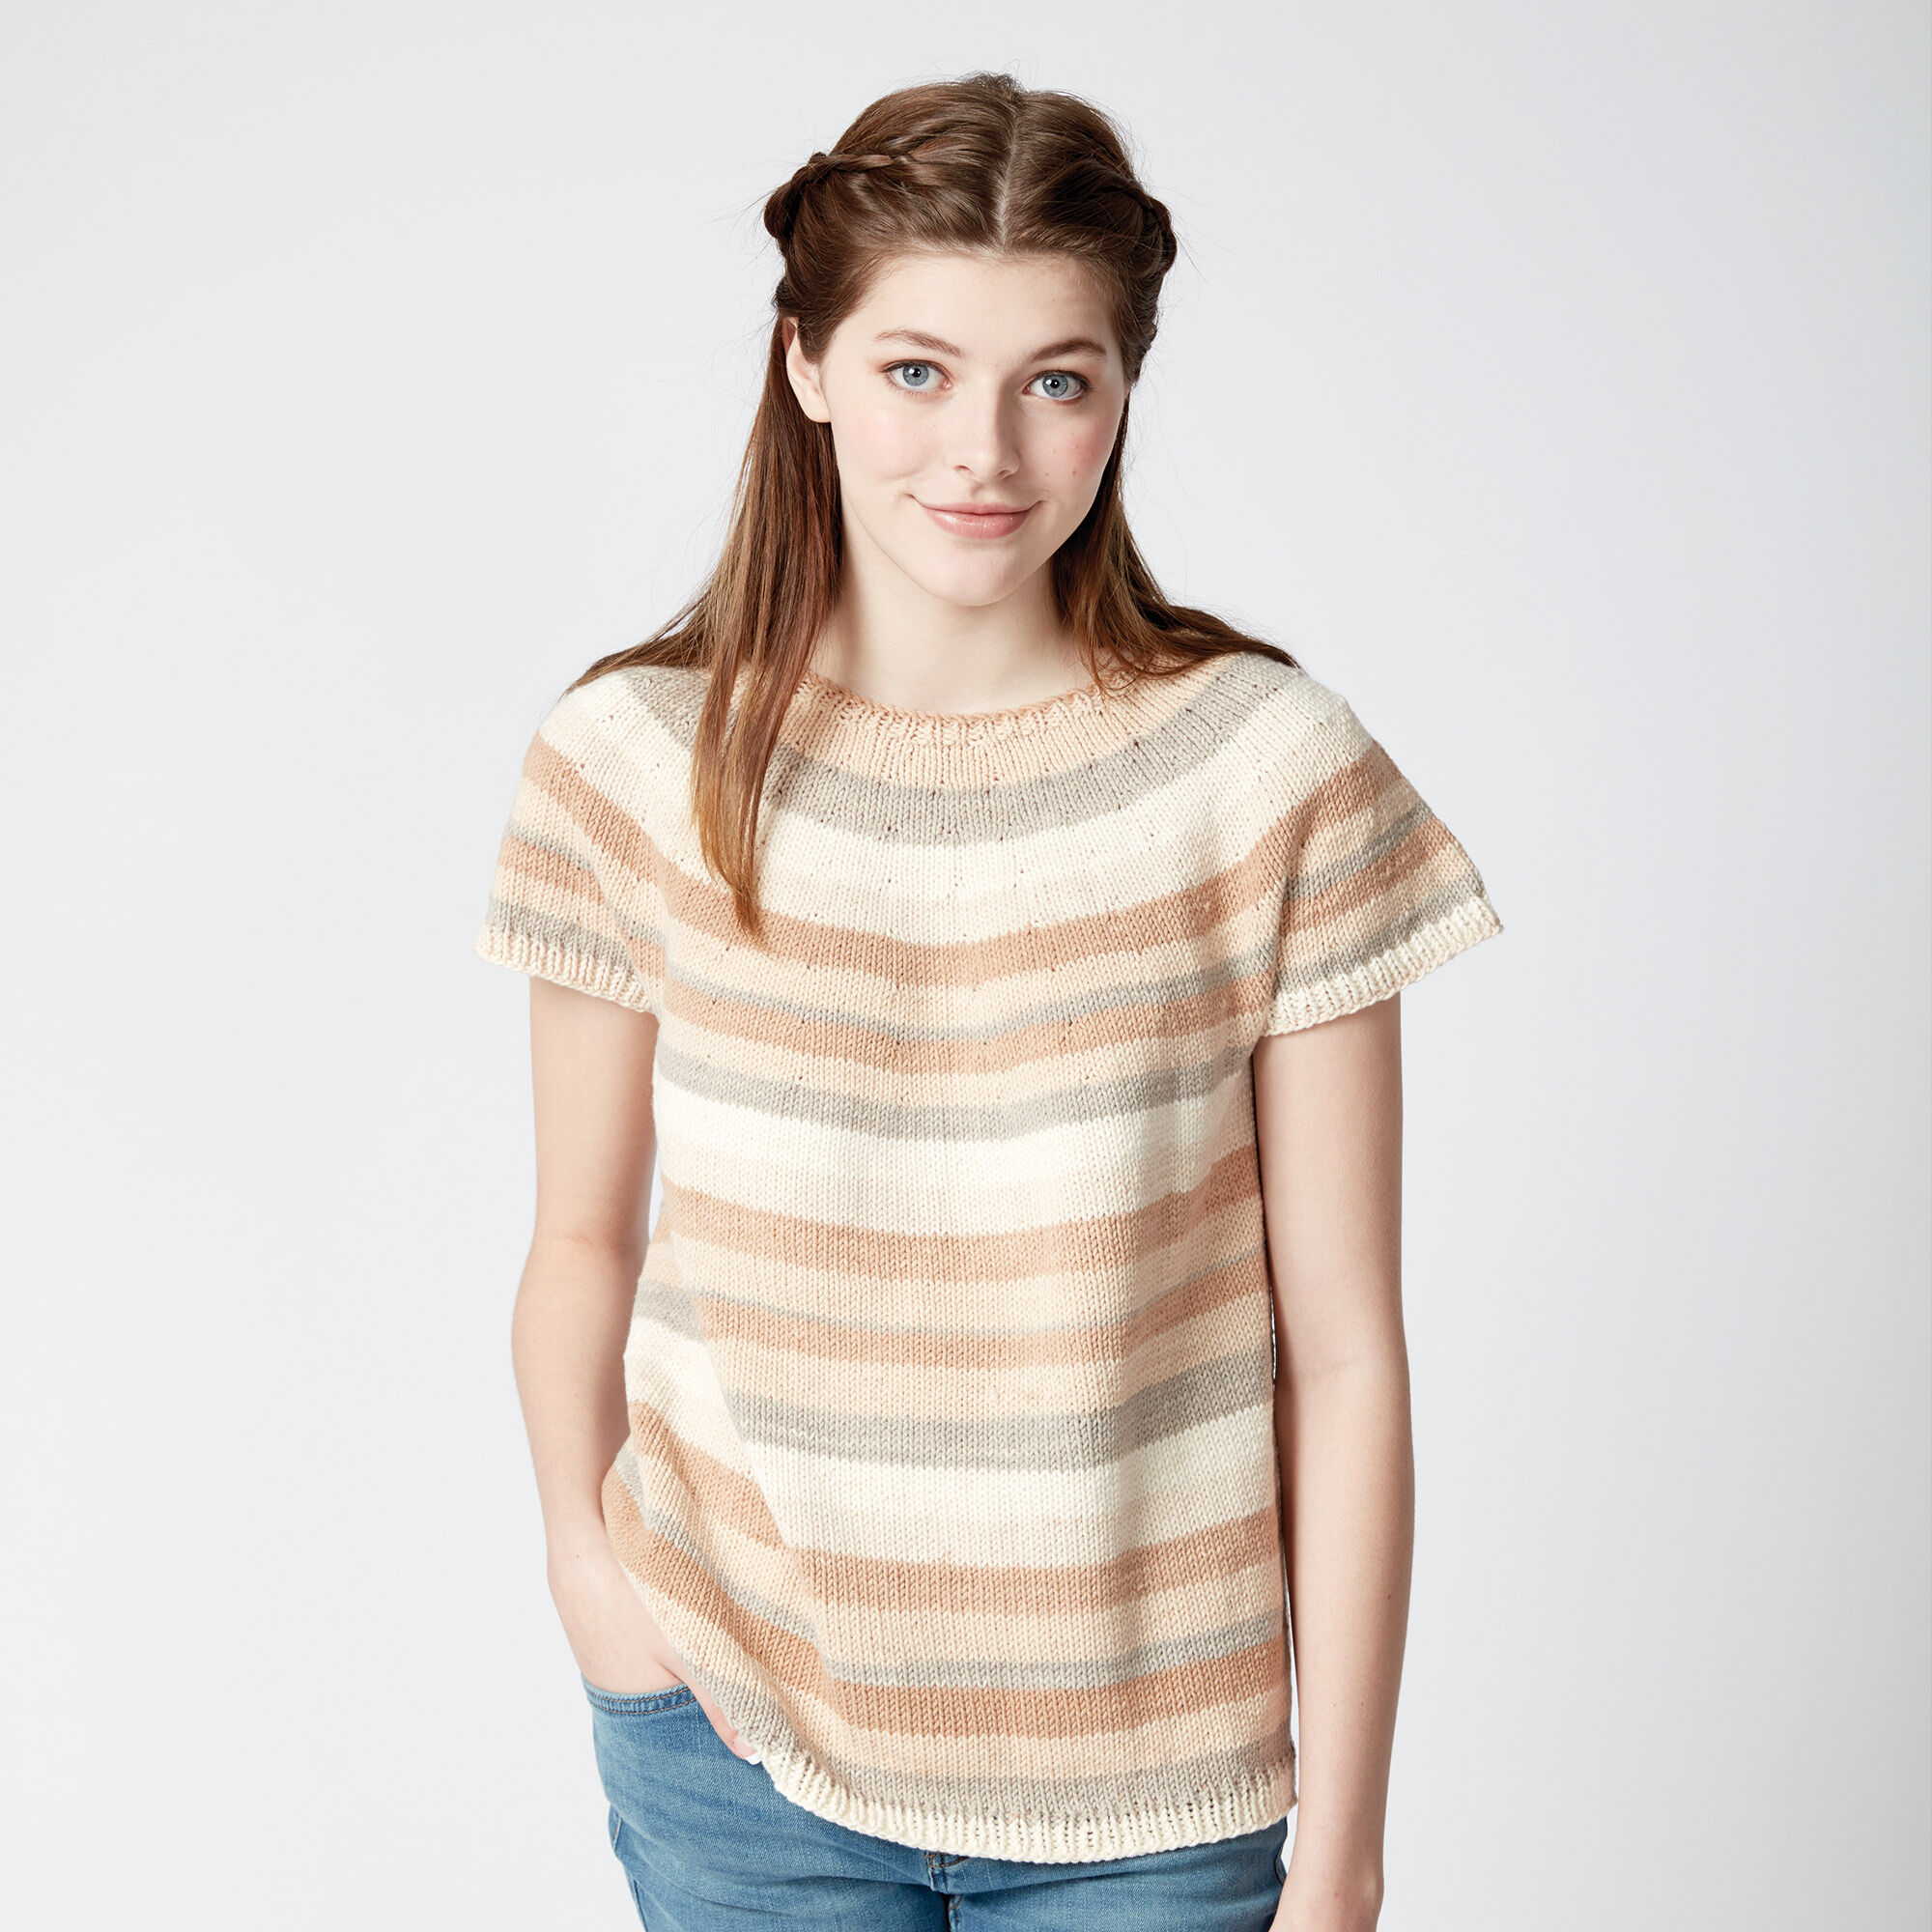 Caron Top Down Knit Pullover